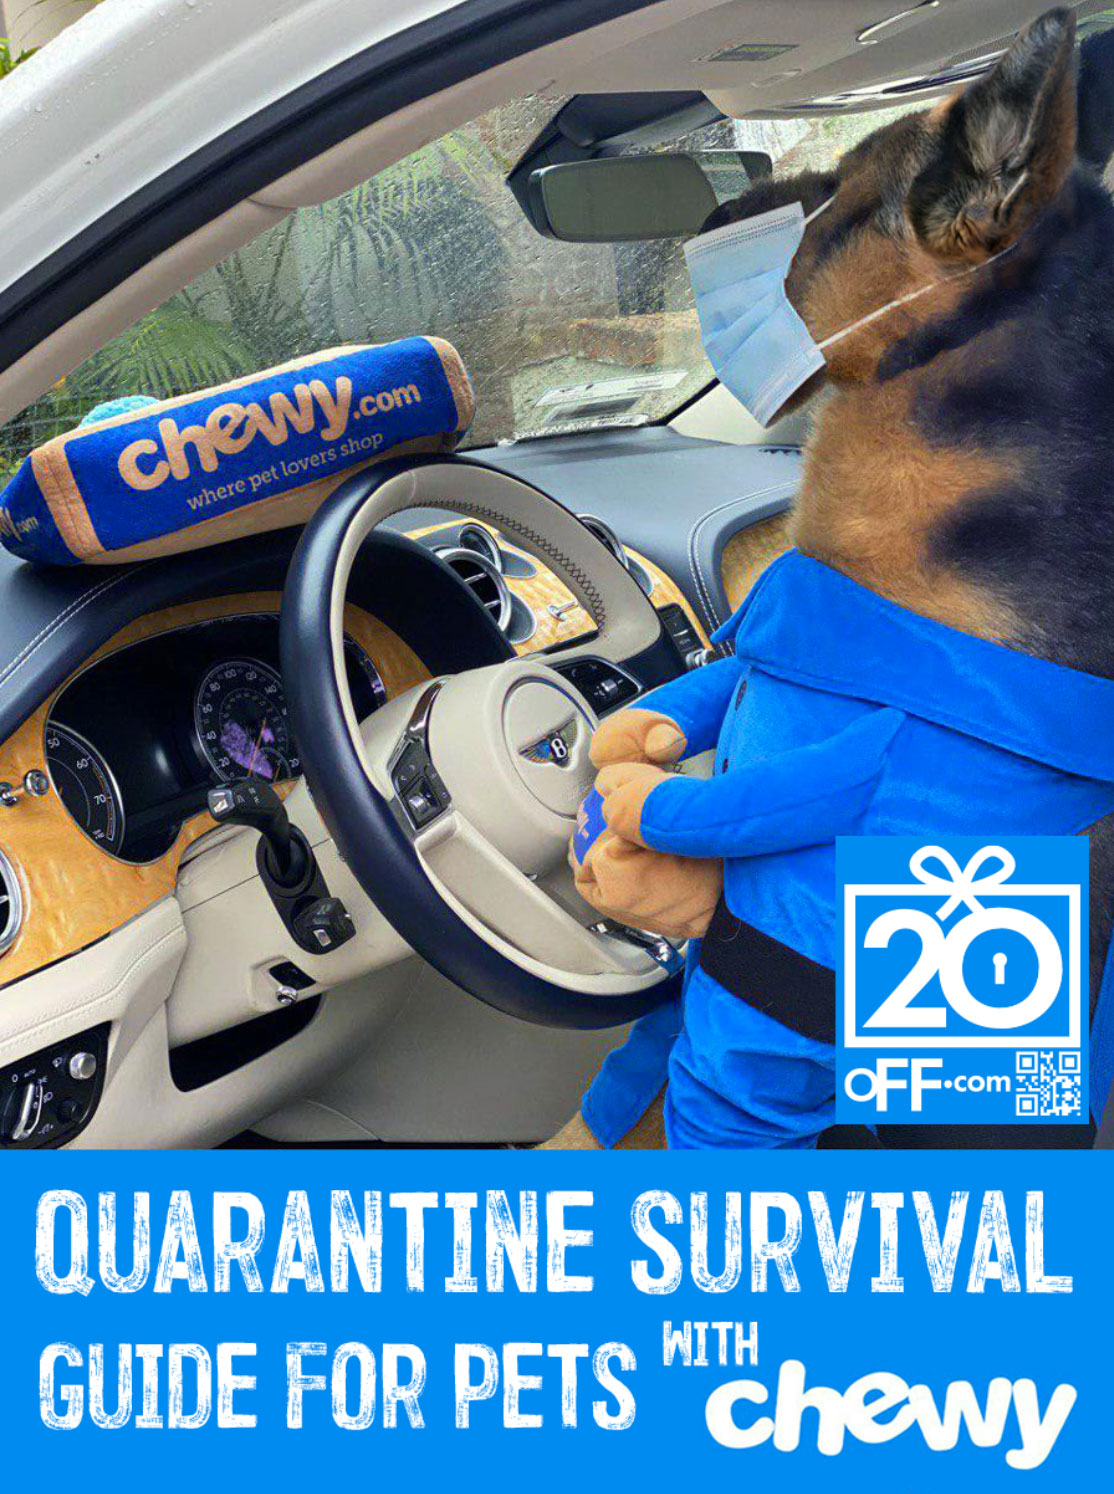 Chewy Quarantine Survival Guide